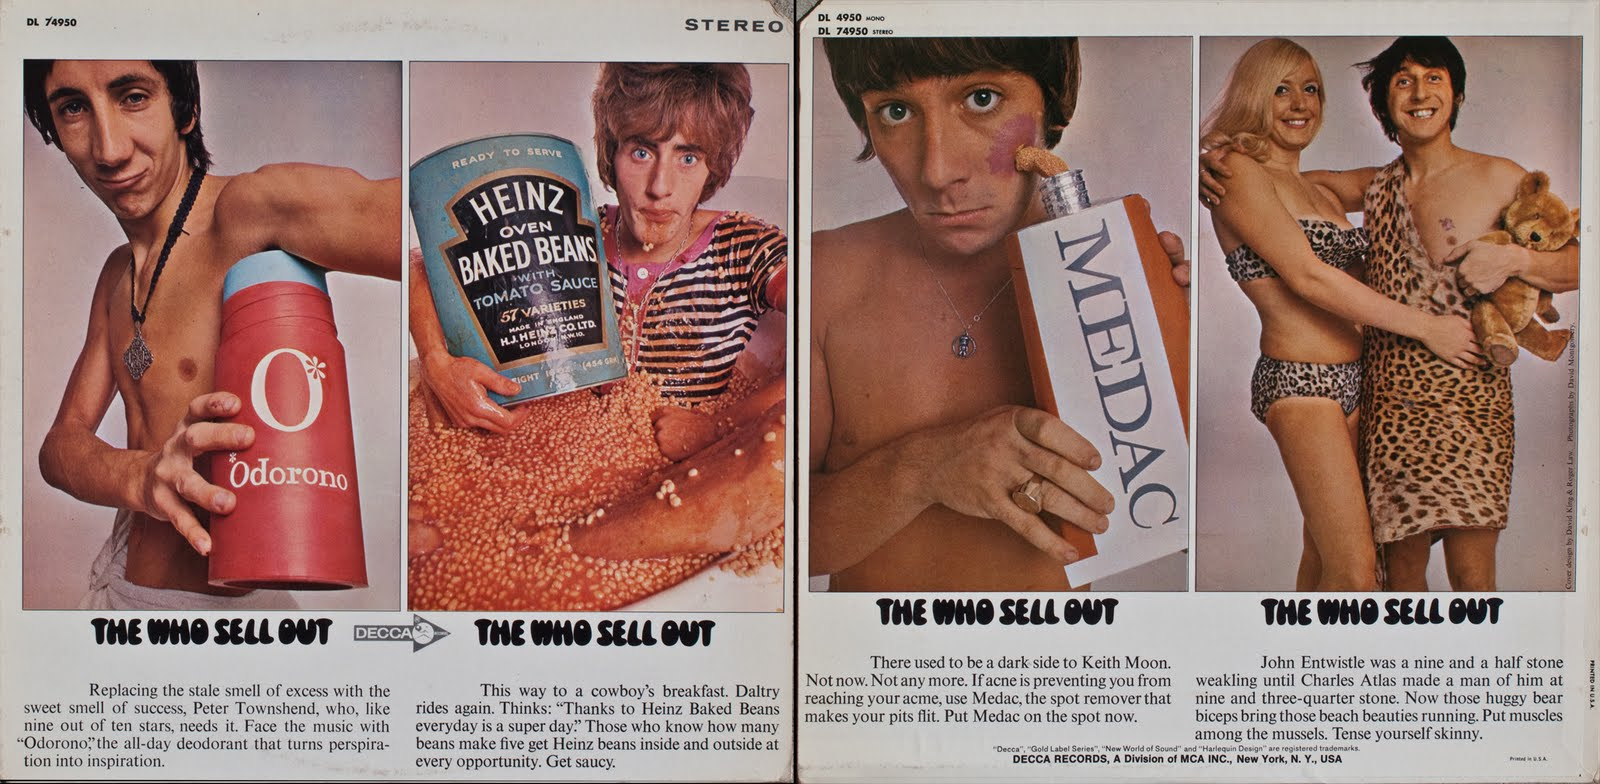 'Sell Out' Album by 60s Rock Band 'The Who' - The inside features satirical images about selling out.